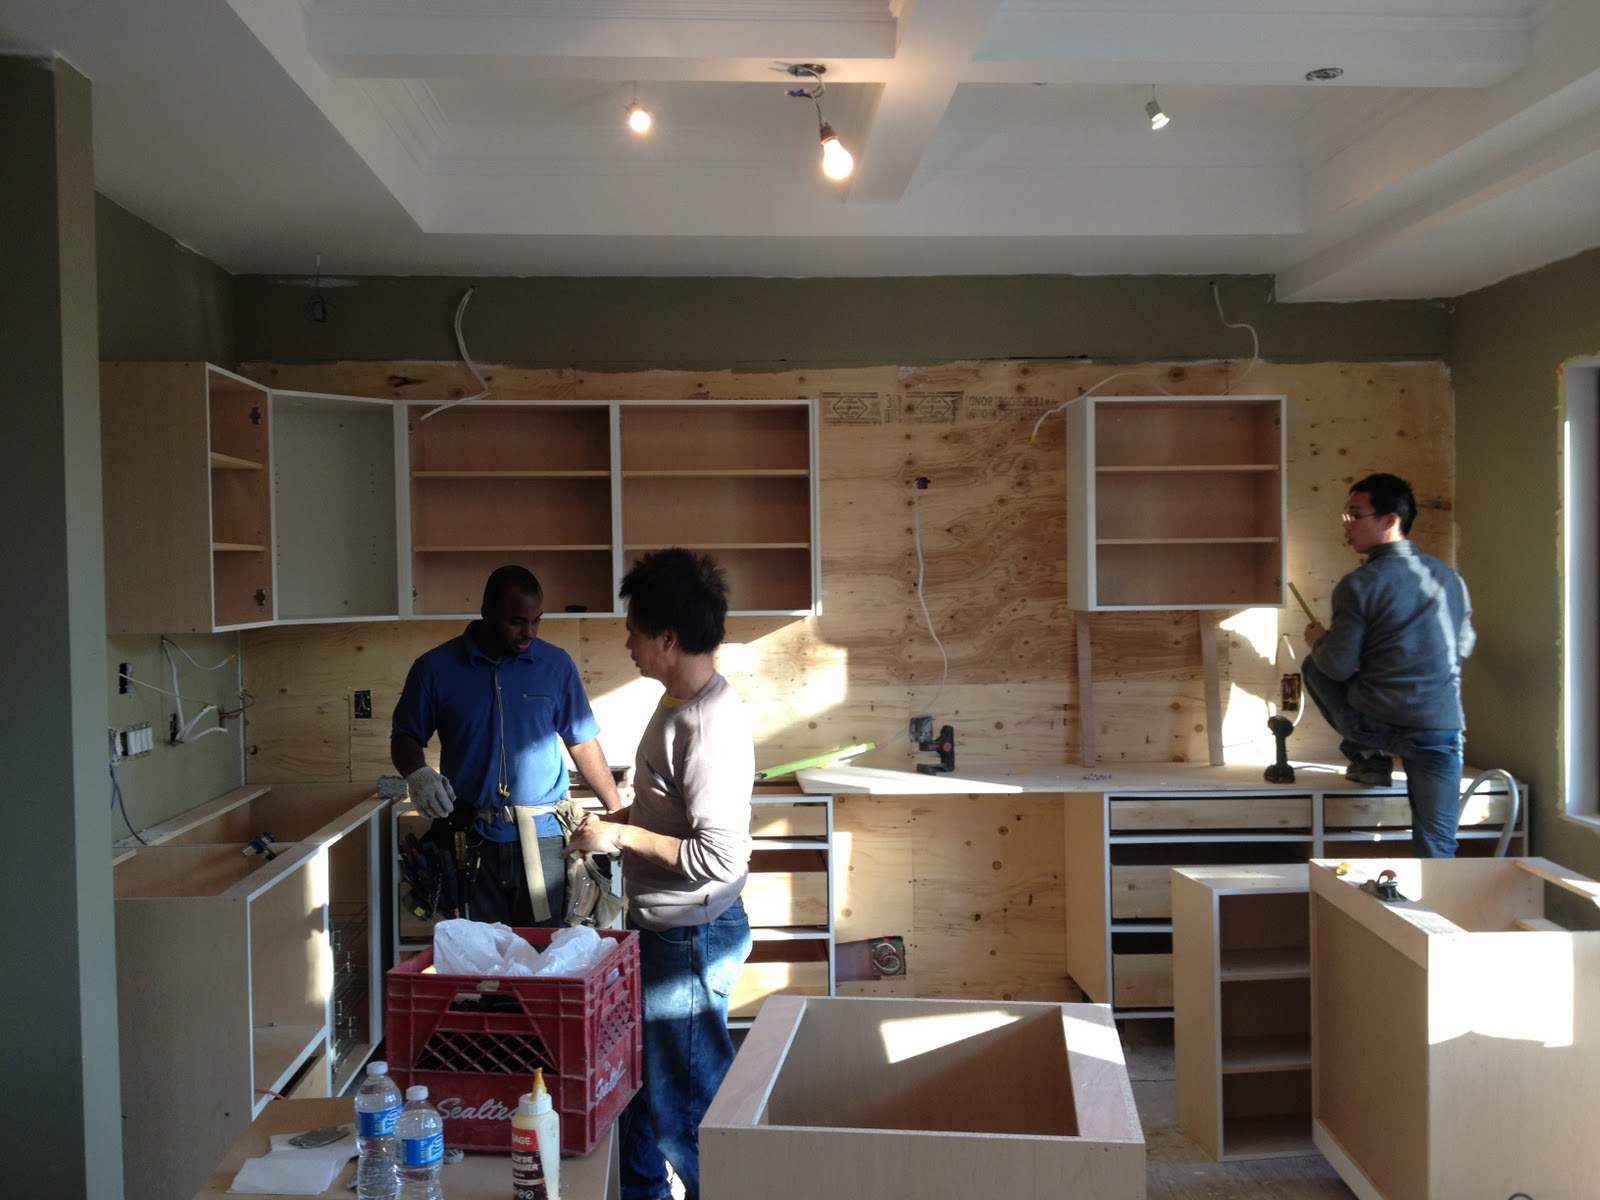 day custom Maple Kitchen installation started today by BAX Cabinets